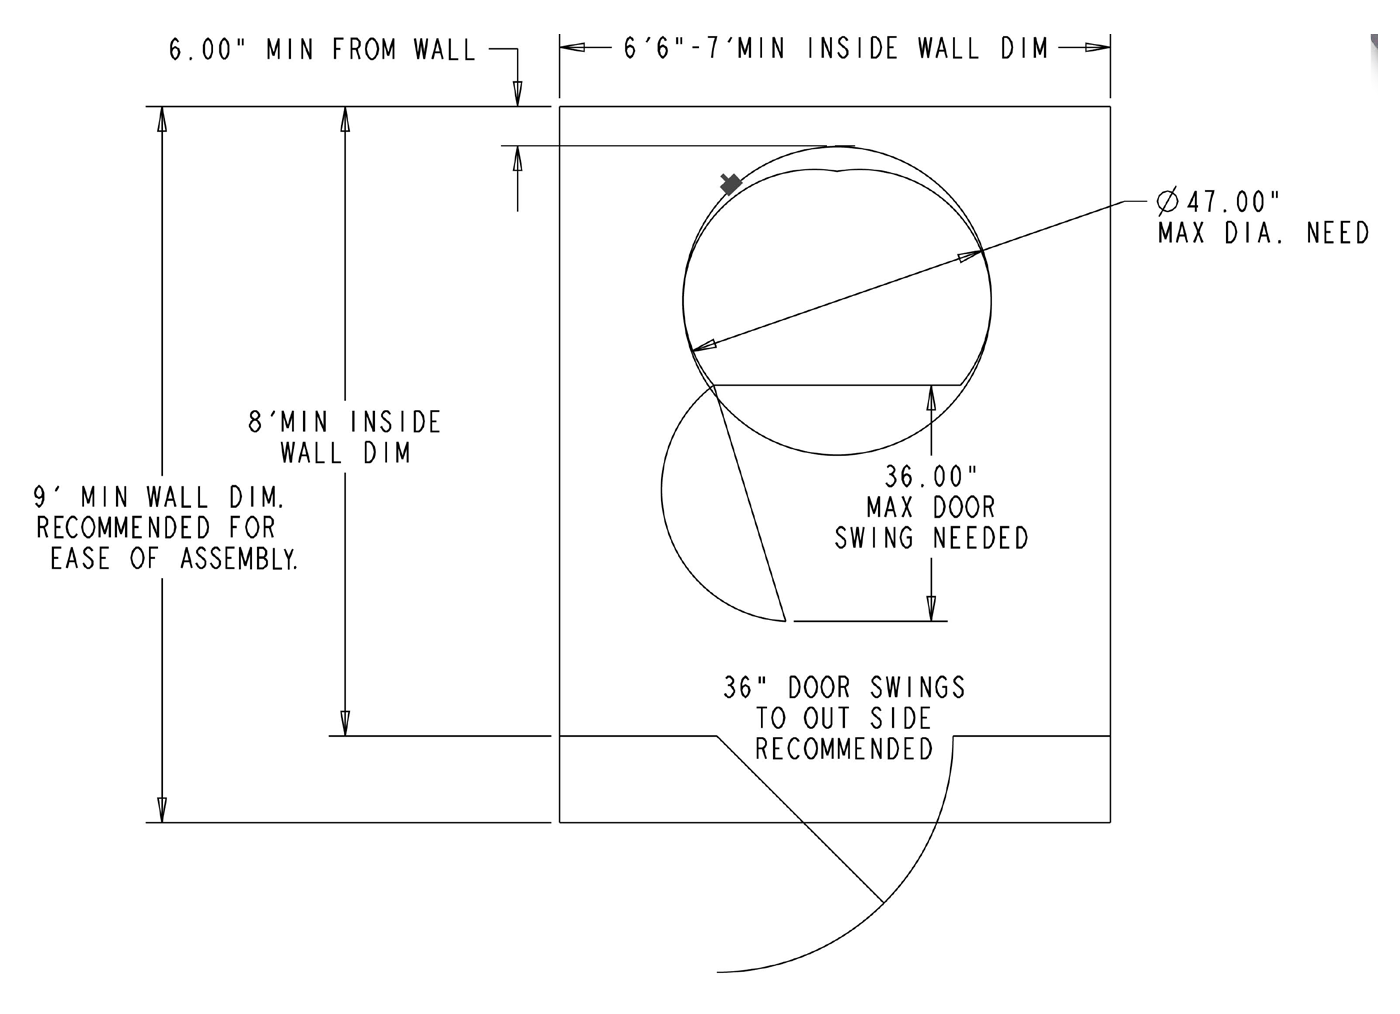 prosun_v3_dimensions?resize=665%2C482 prosun tanning bed wiring diagram wiring diagram sunal tanning bed 220v wiring diagram at crackthecode.co